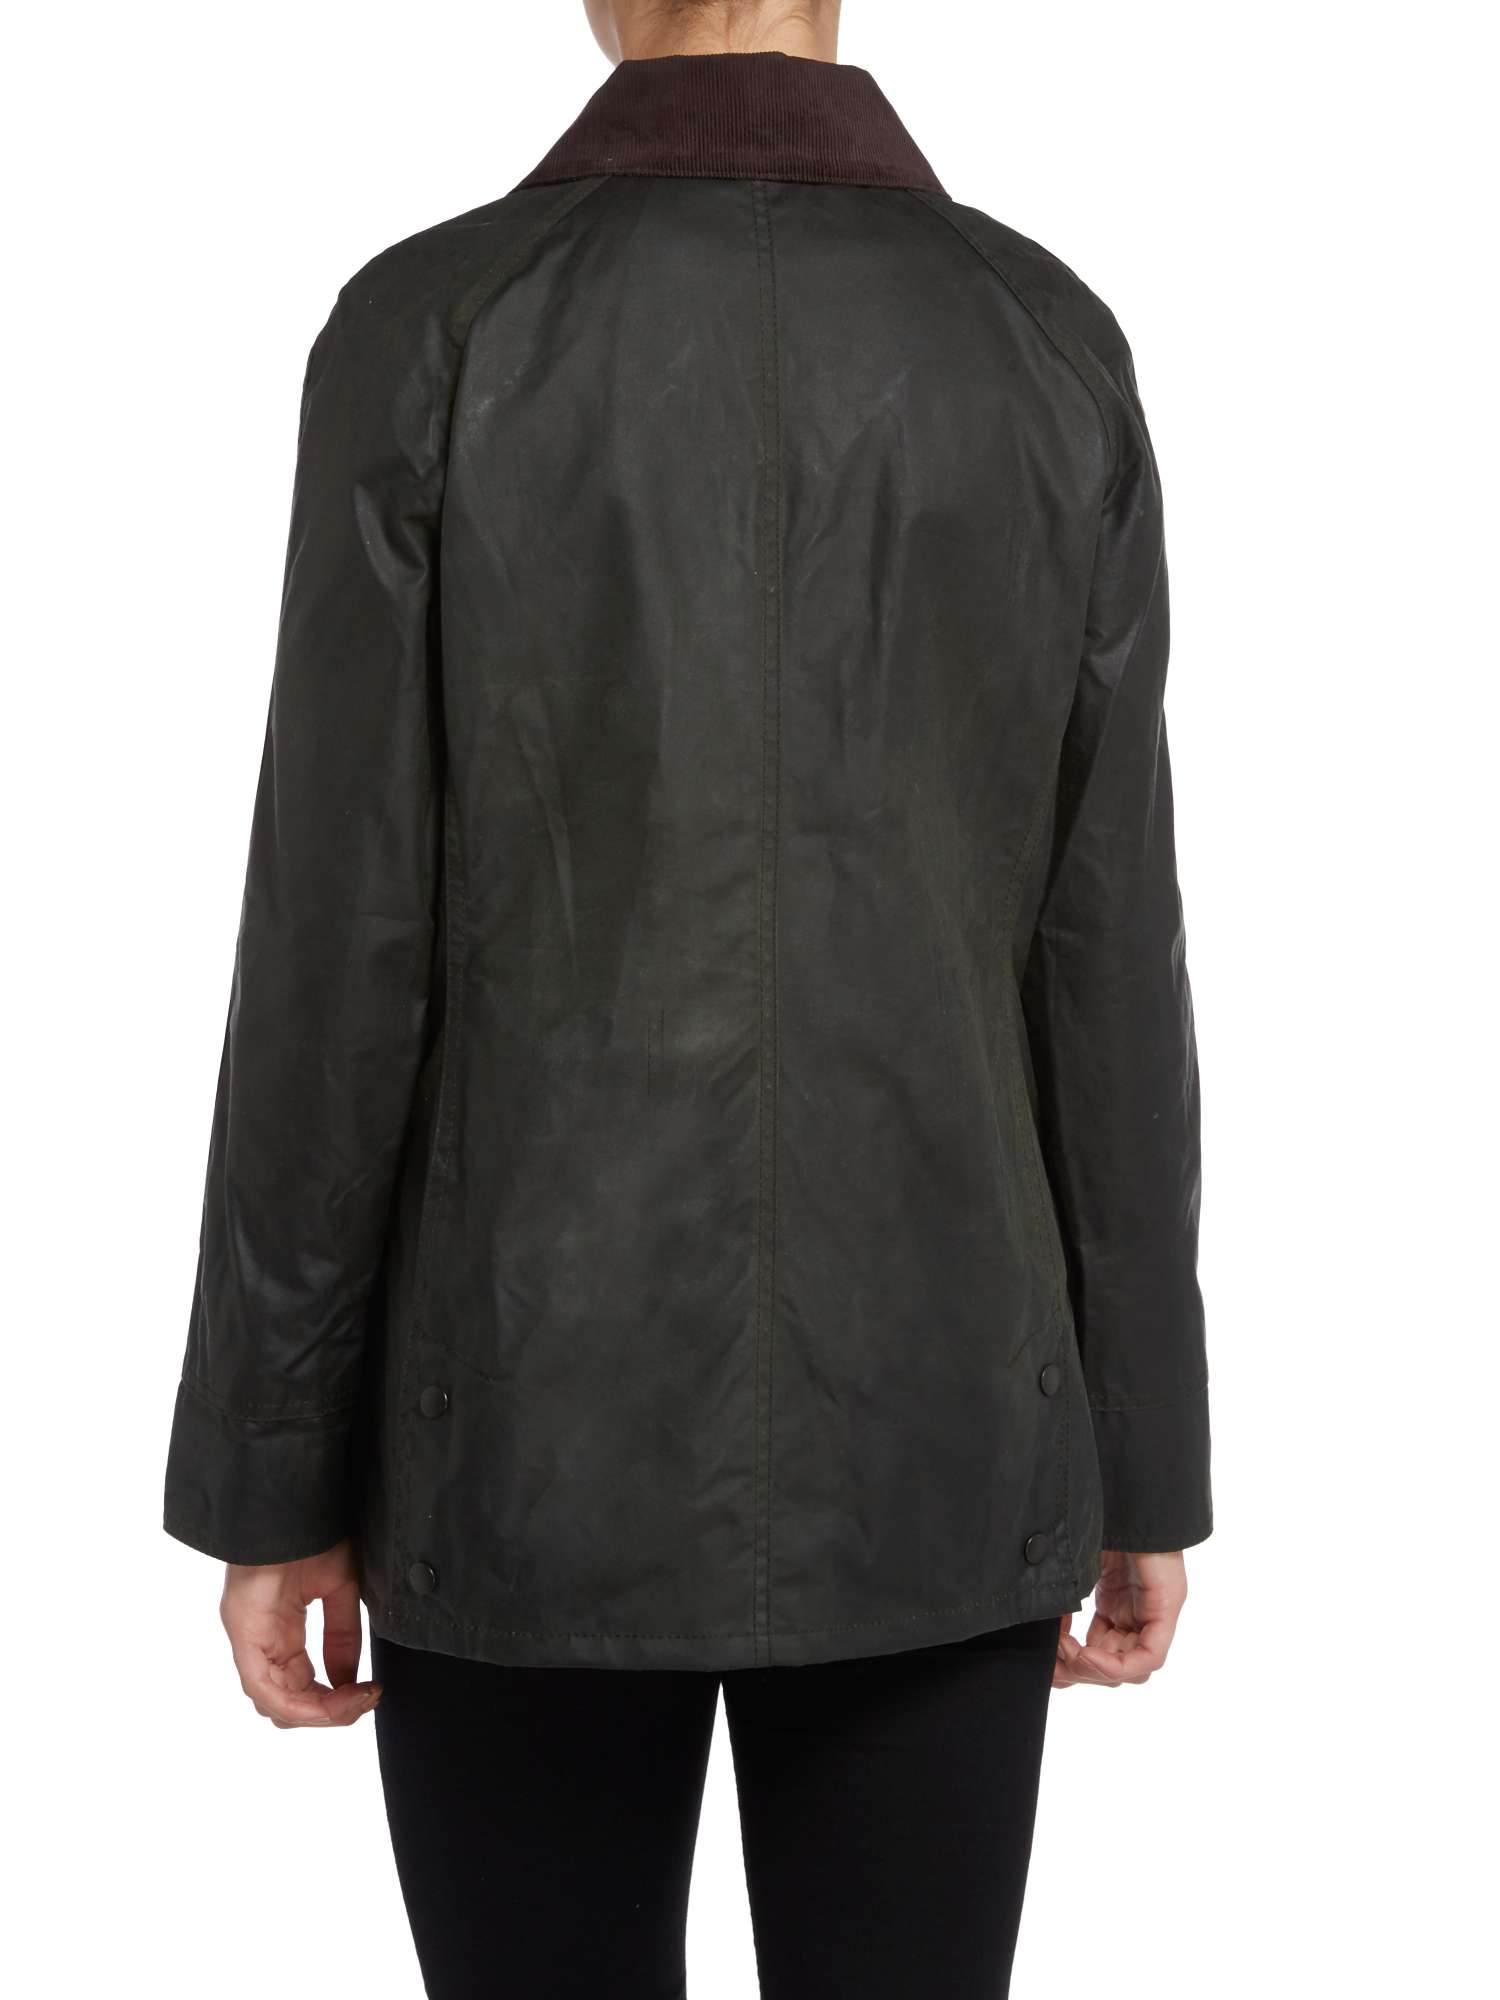 Jacket Barbour Beadnell Waxed Waxed Barbour Beadnell Waxed Beadnell Barbour Jacket Jacket Beadnell Barbour qRxCxgn7wX